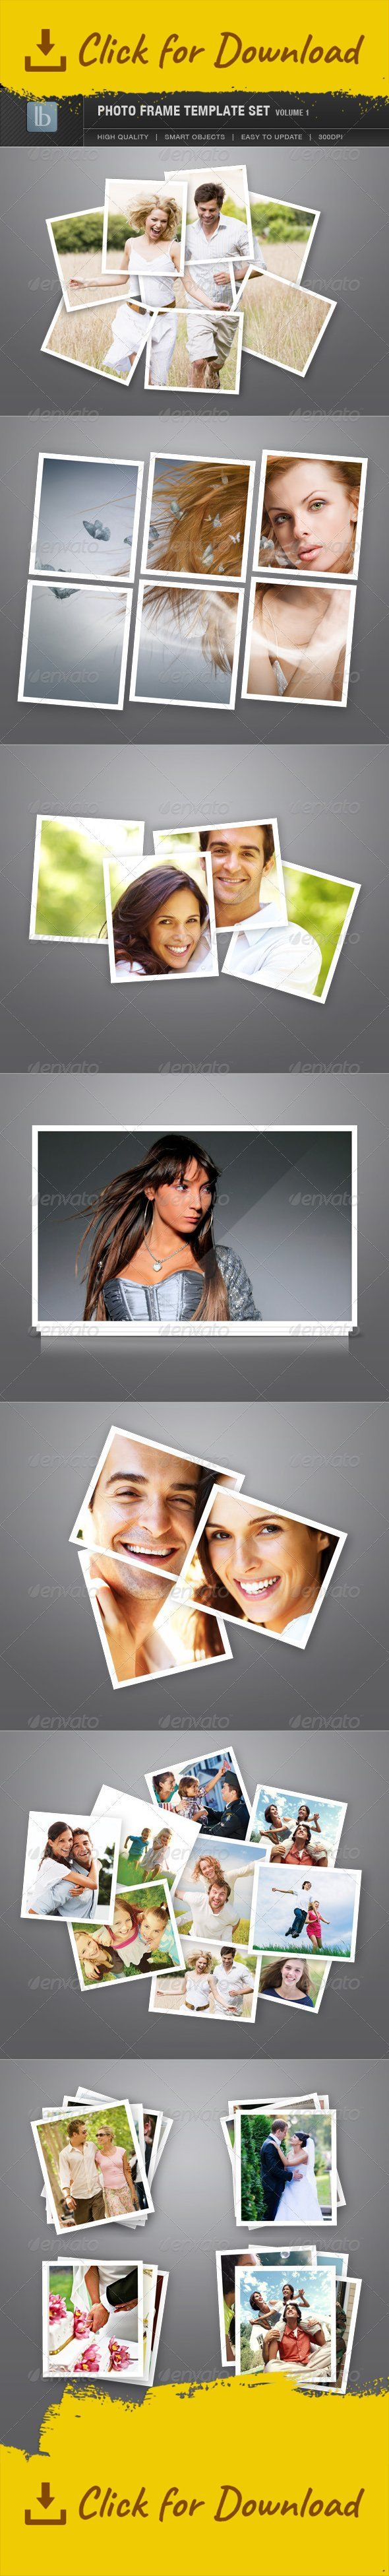 creative, display, frame, frames, layered, mockup, modern, photo, photo frame, photo set, photos, photoshop, portfolio, presentation, psd, scattered, stylish, templates                     Photo Frame Template Set | Vol 1 Display your beautiful photos with these stylish photo frames!  This package contains 10 different photo frame templates. Smart objects were used so everything is very easy to update, simply paste your image and your done! All of them are high-resolution 300 dpi so can be…